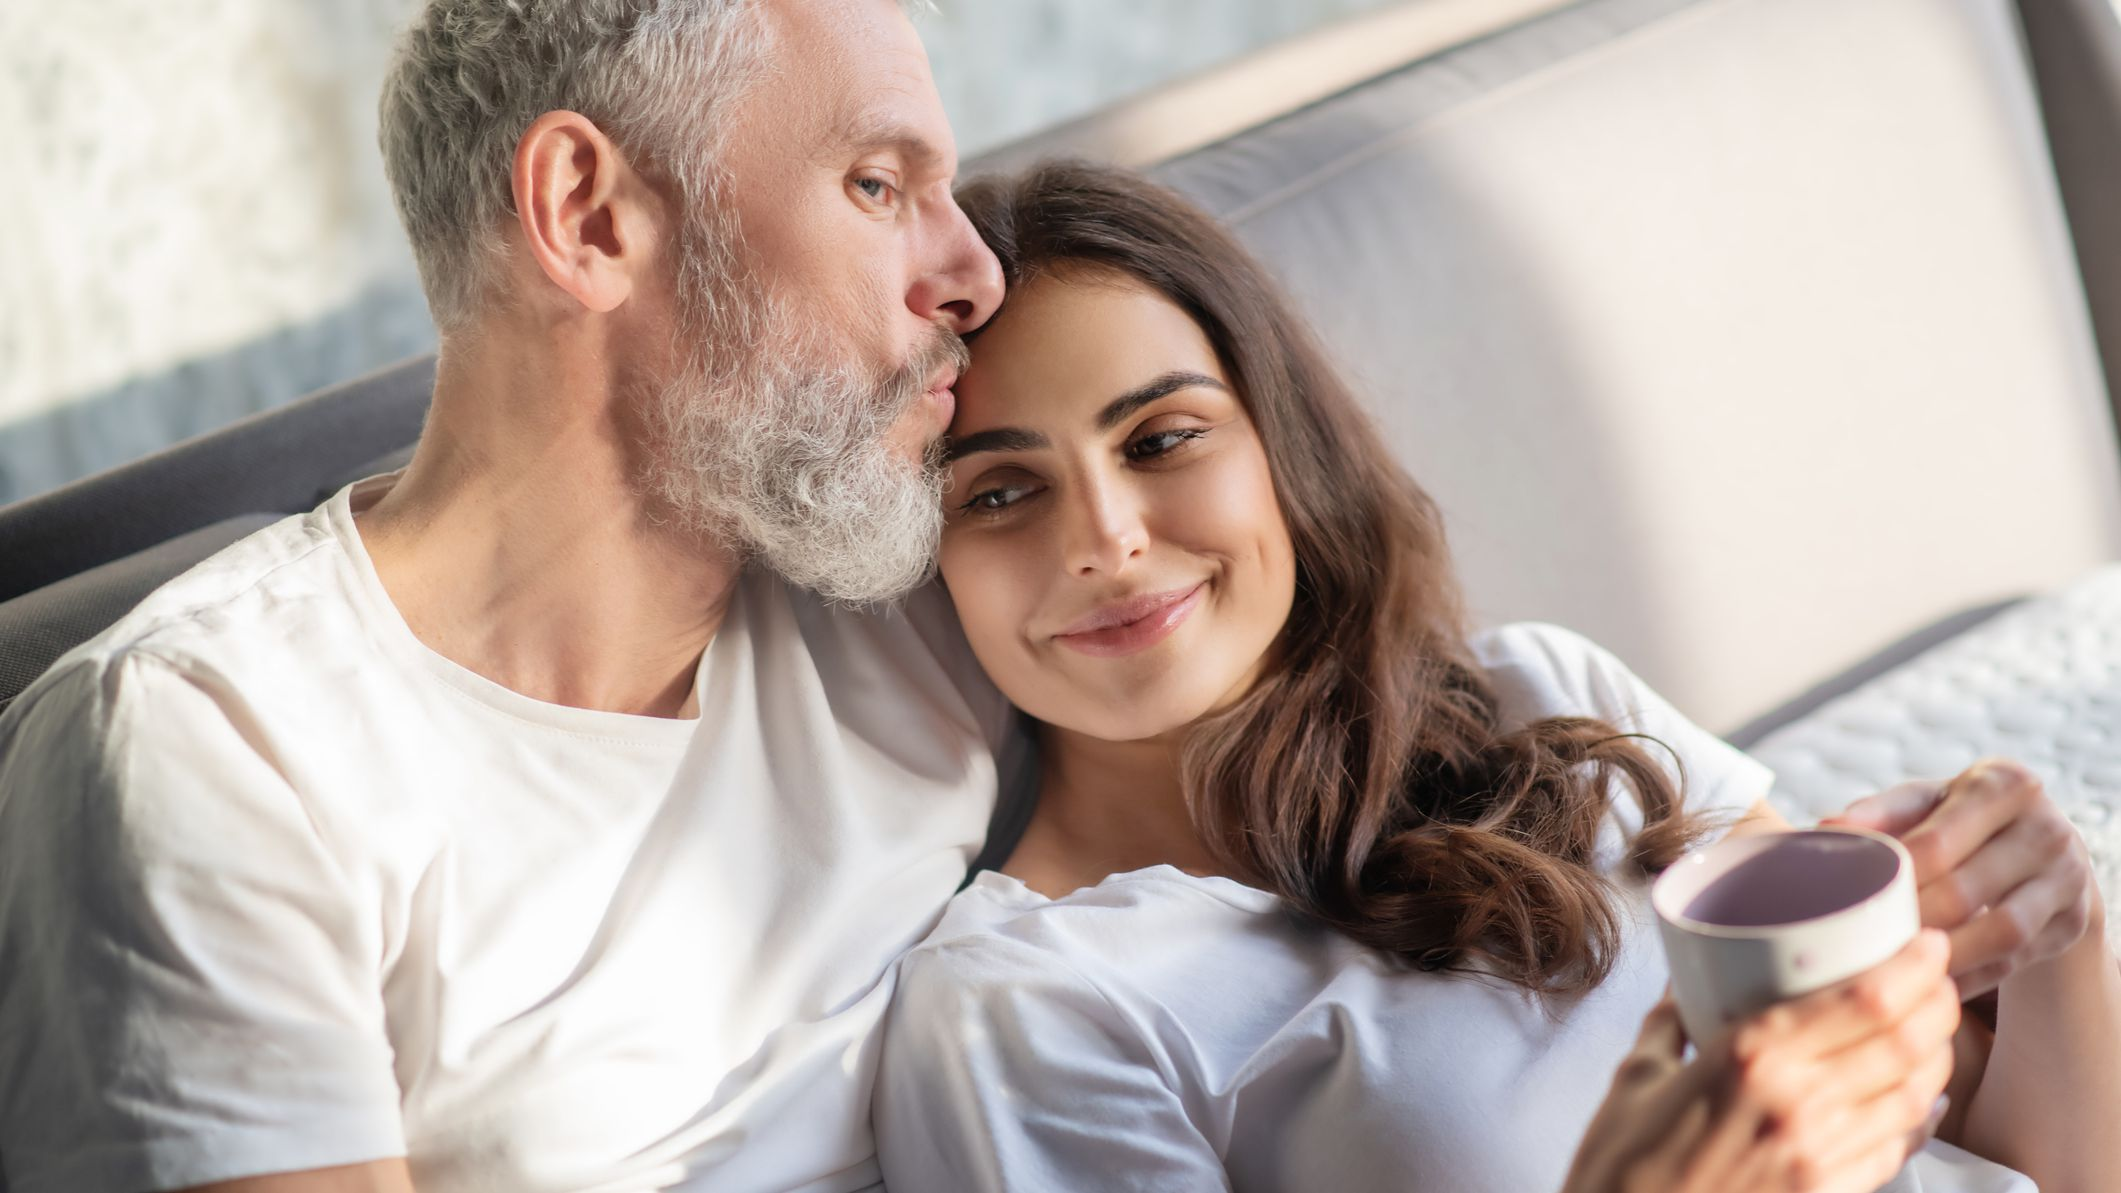 Successful relationships with big age gaps